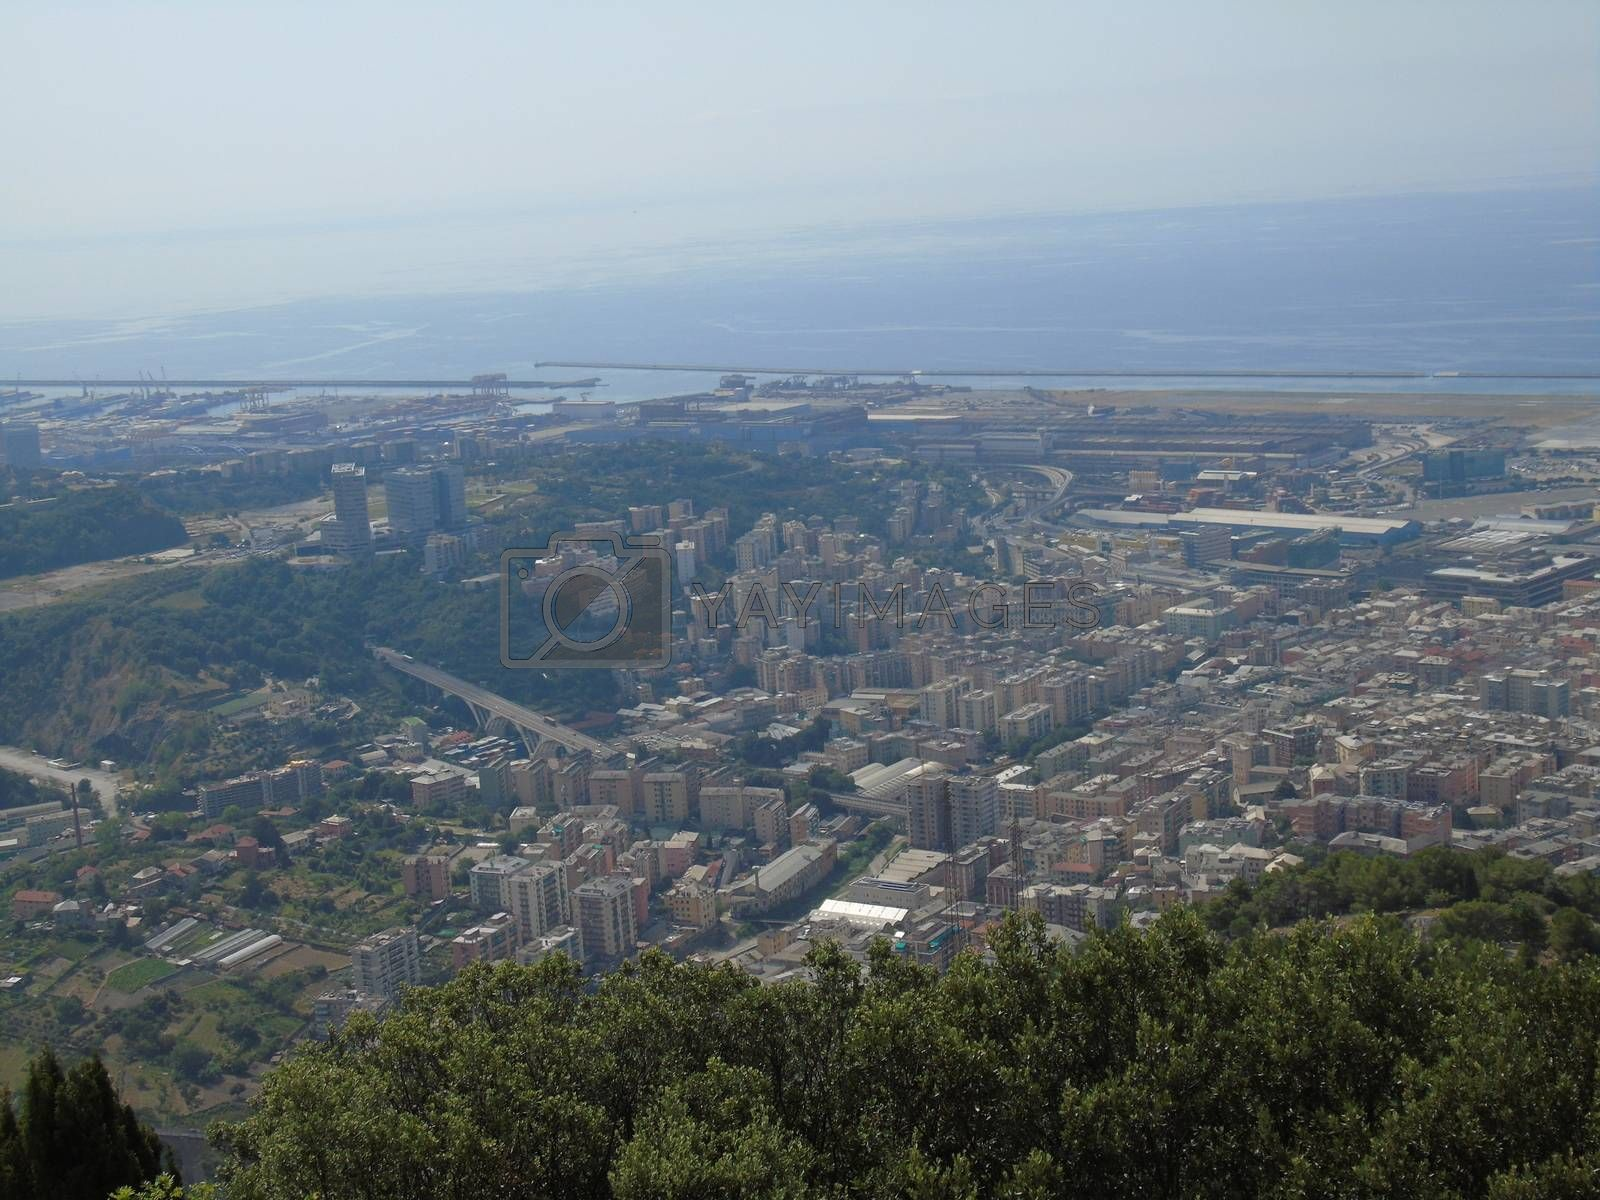 Genova, Italy – 07/30/2020: Beautiful scenic aerial view of the city, port, dam, sea, Cristoforo Colombo airport runway, containers shipping terminal, Pra, Voltri, and Sestri promontory from Monte Gazzo